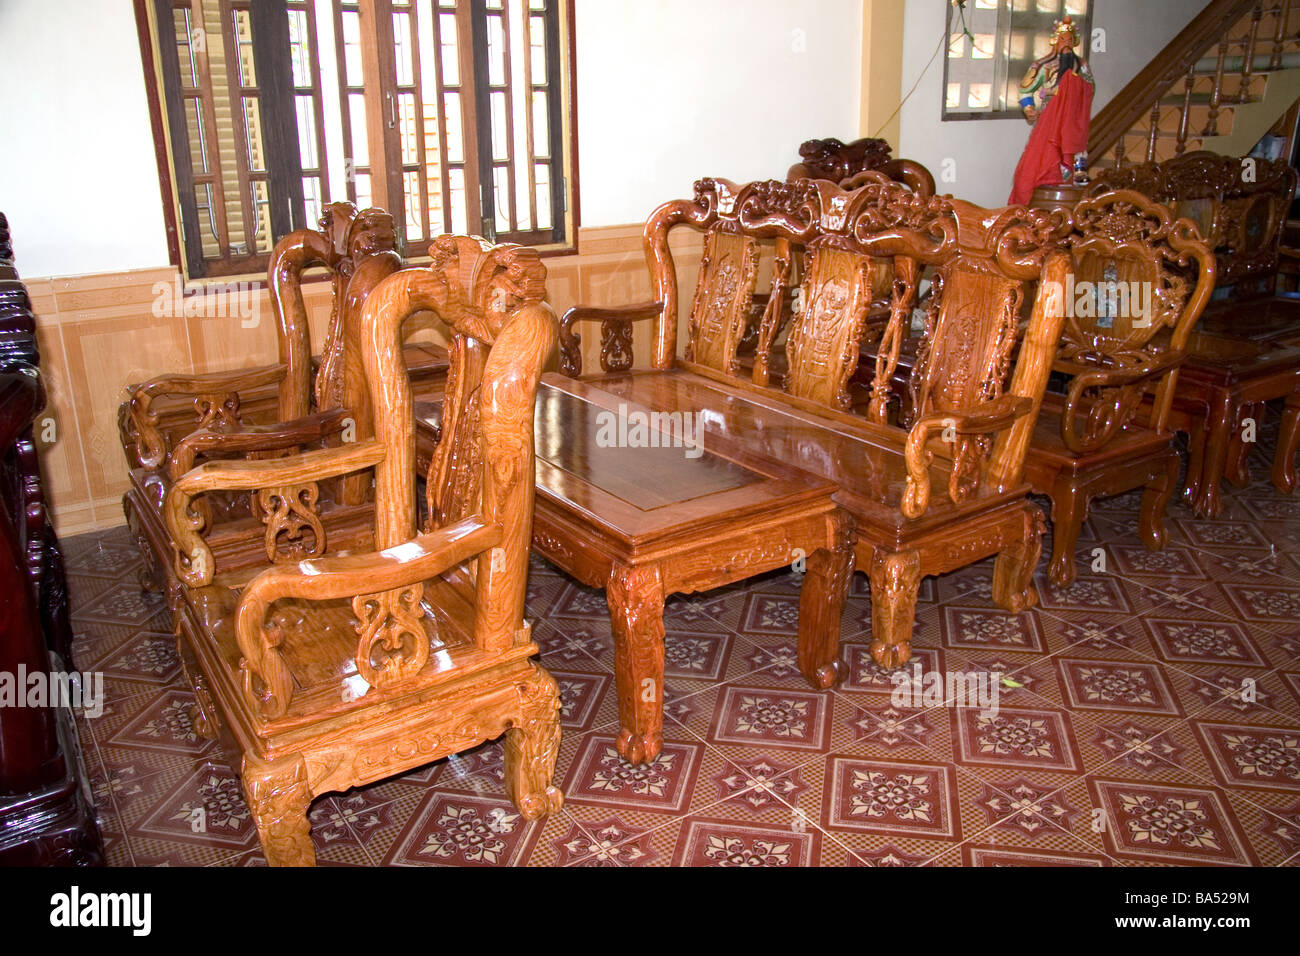 Vietnamese Furniture Factory In Dong Ha Vietnam Stock Photo Royalty Free Image 23468528 Alamy